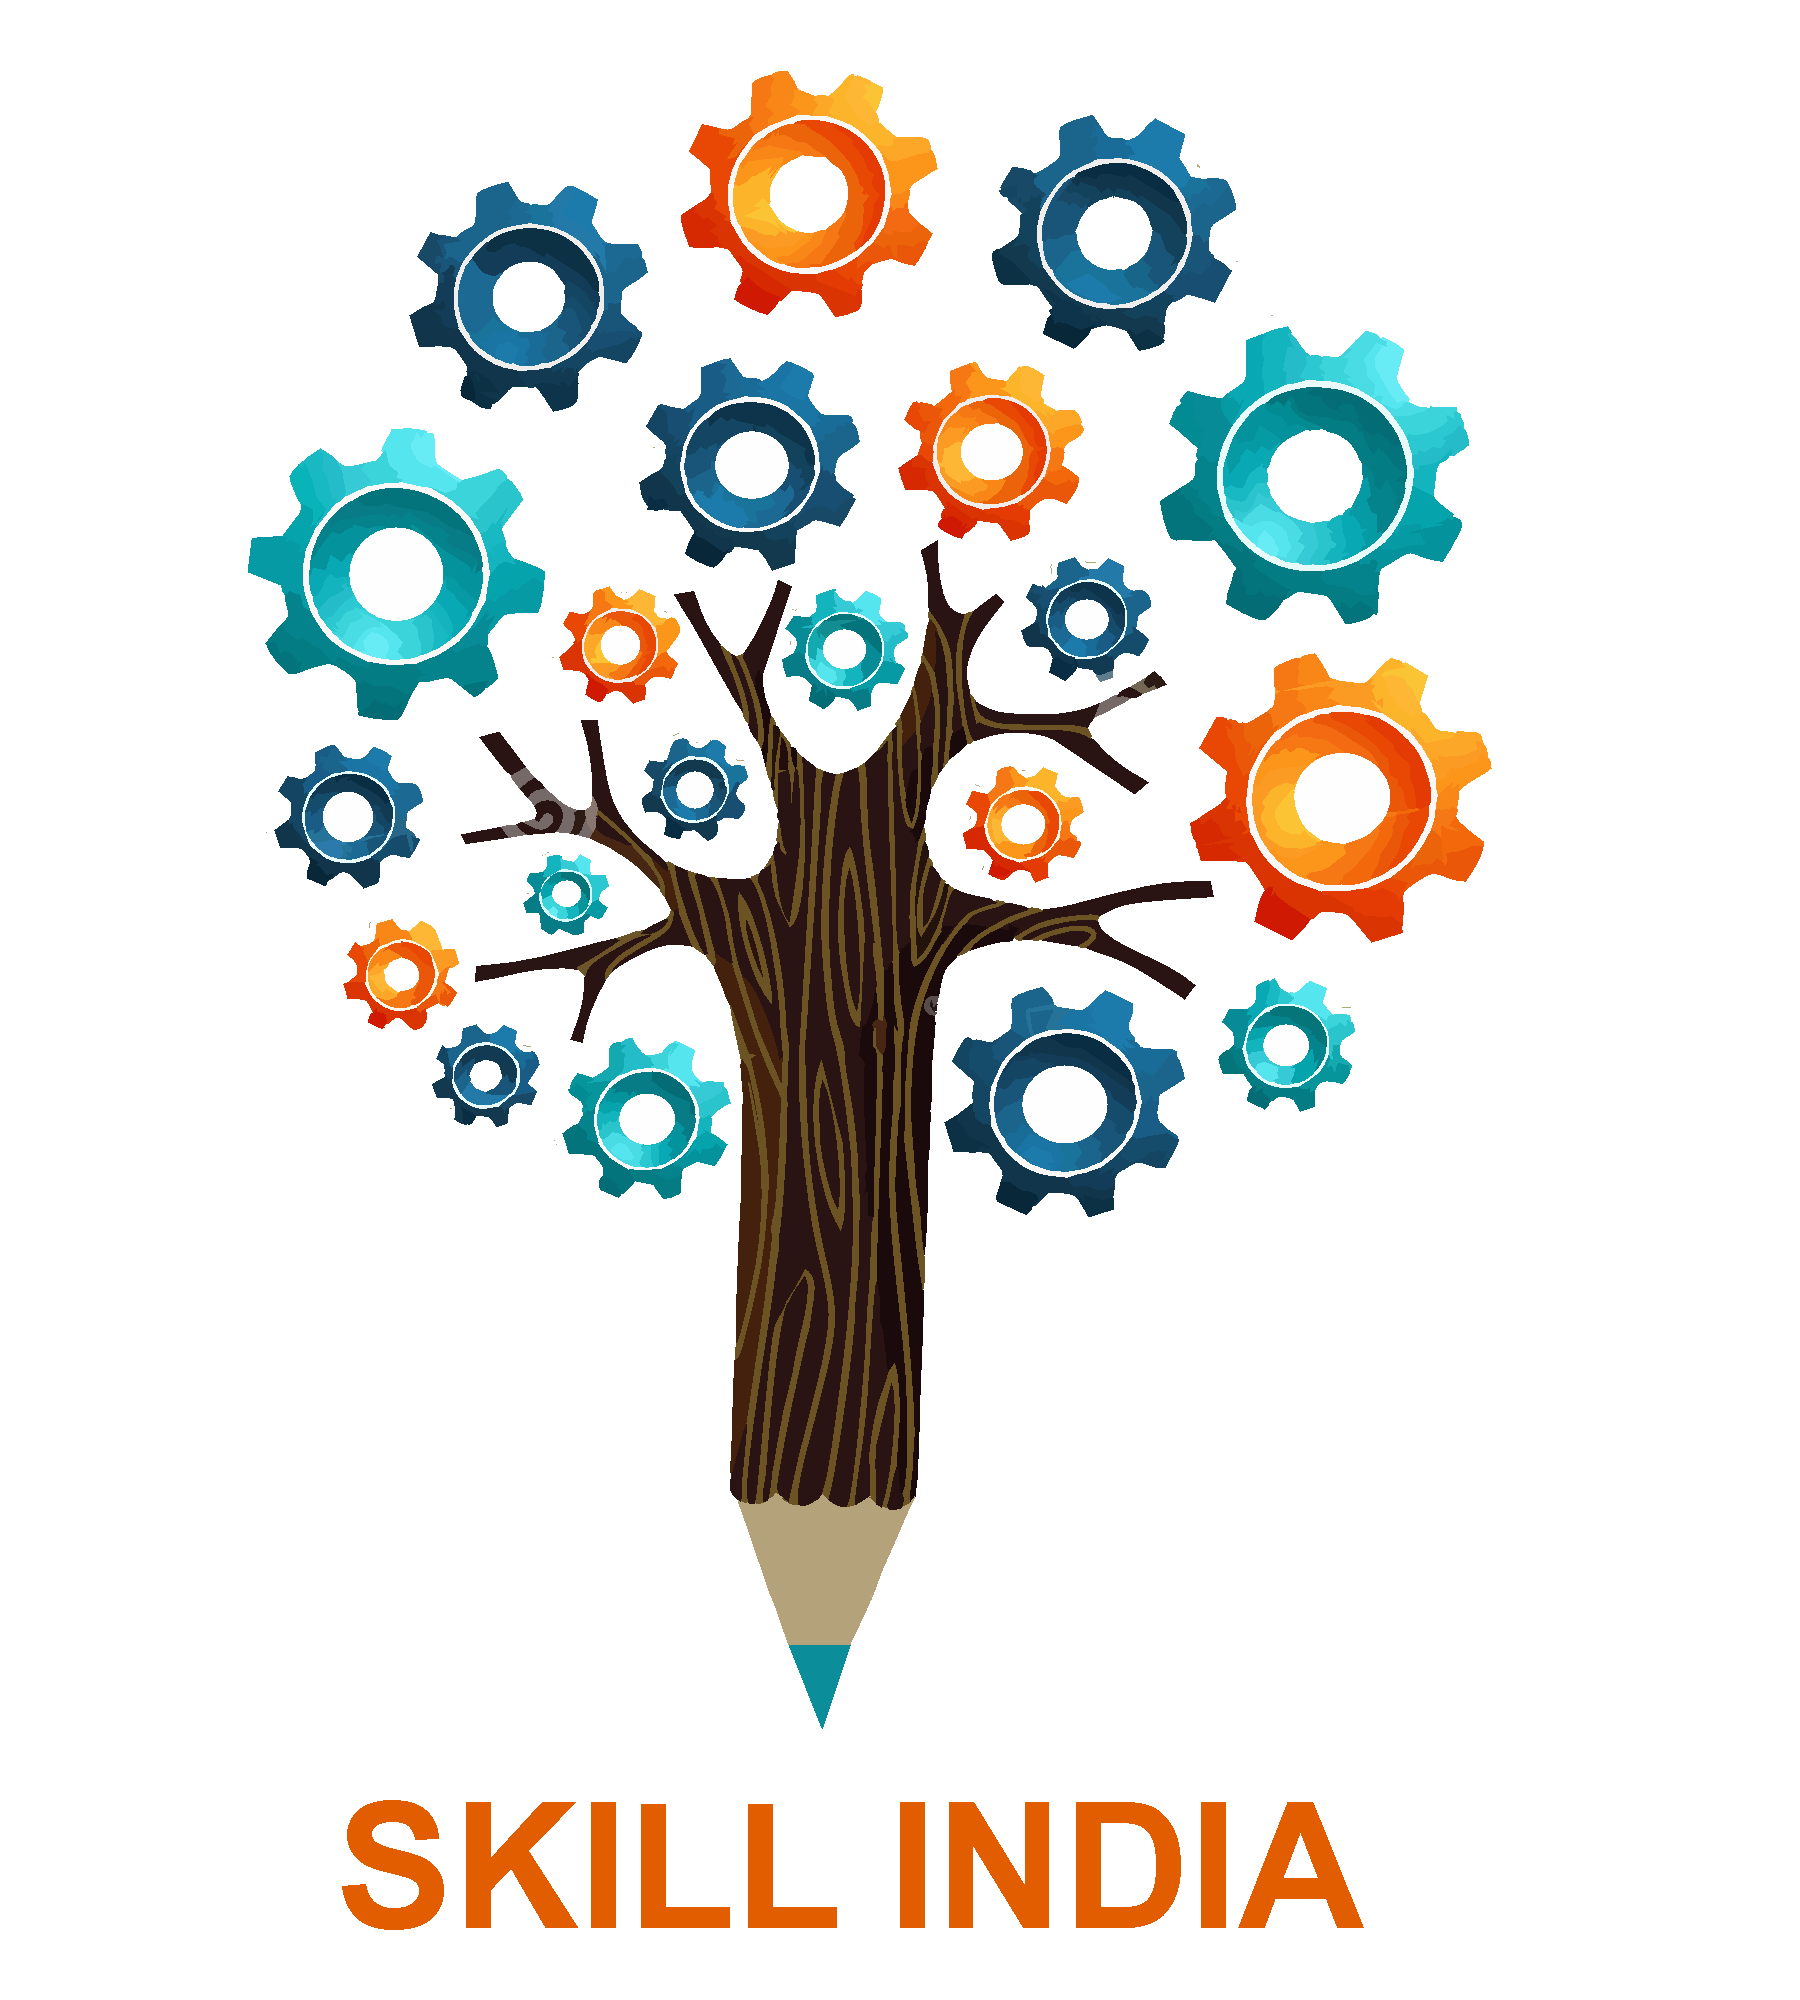 1 04 crore people skilled in 2015 16 under skill india mission a